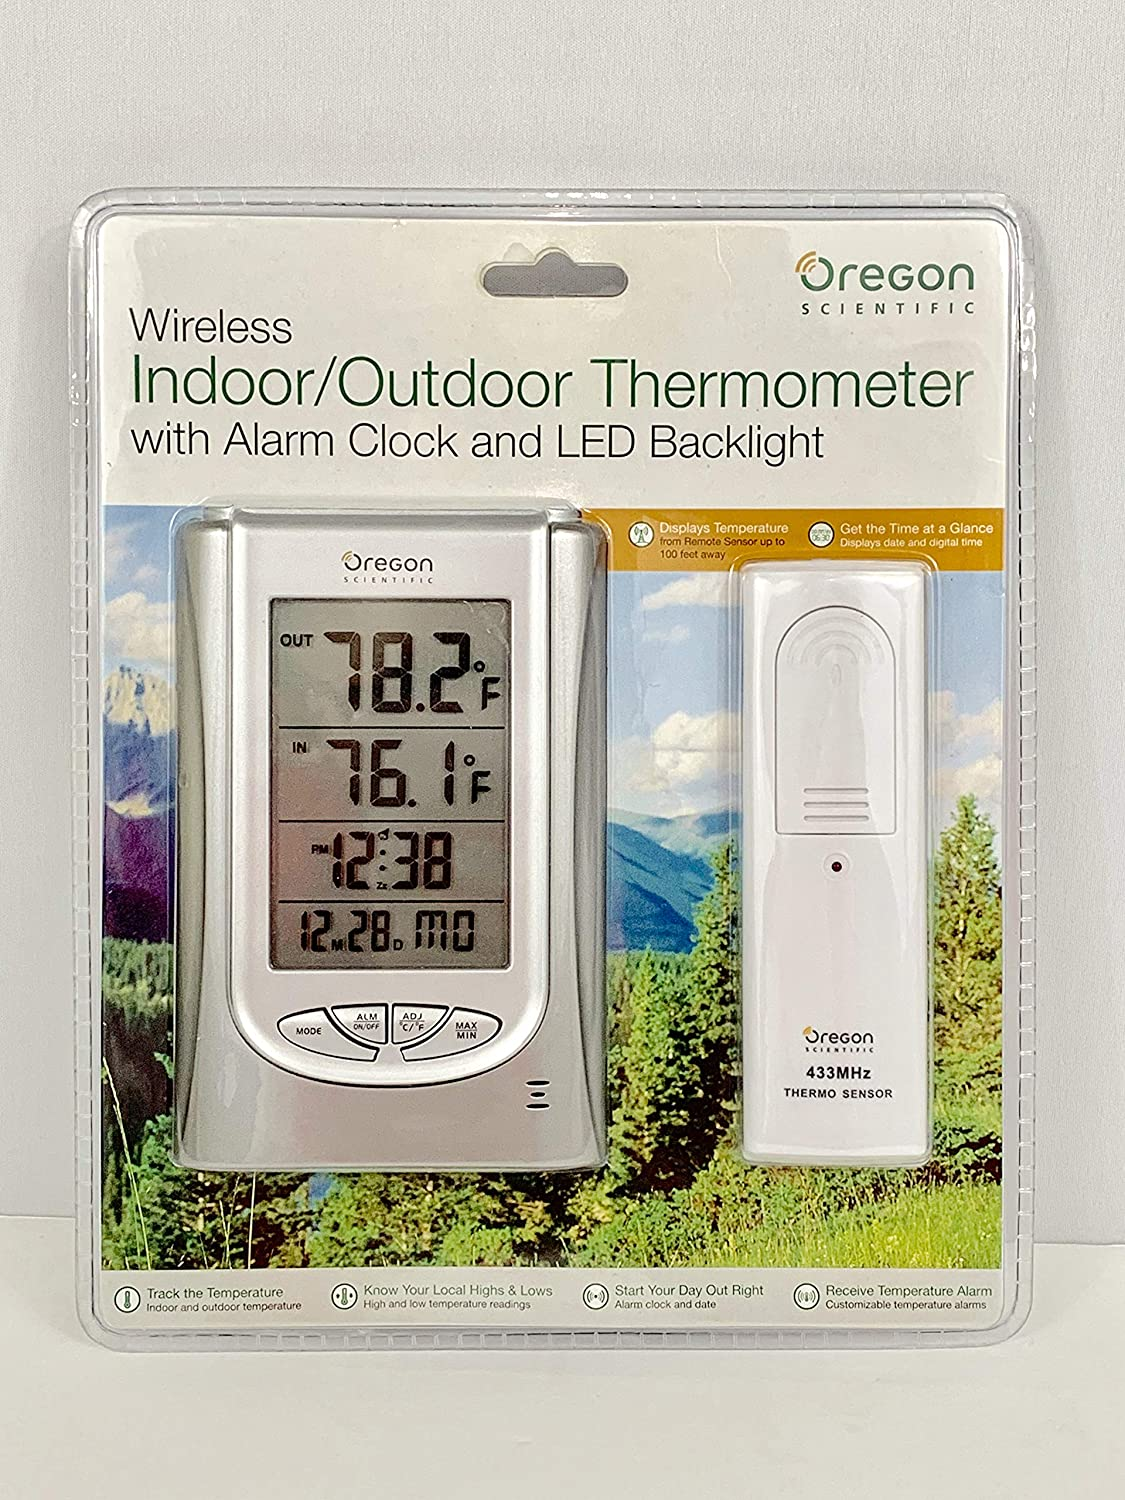 Oregon Scientific Wireless Indoor/Outdoor Thermometer with Alarm Clock and Led Backlight Silver